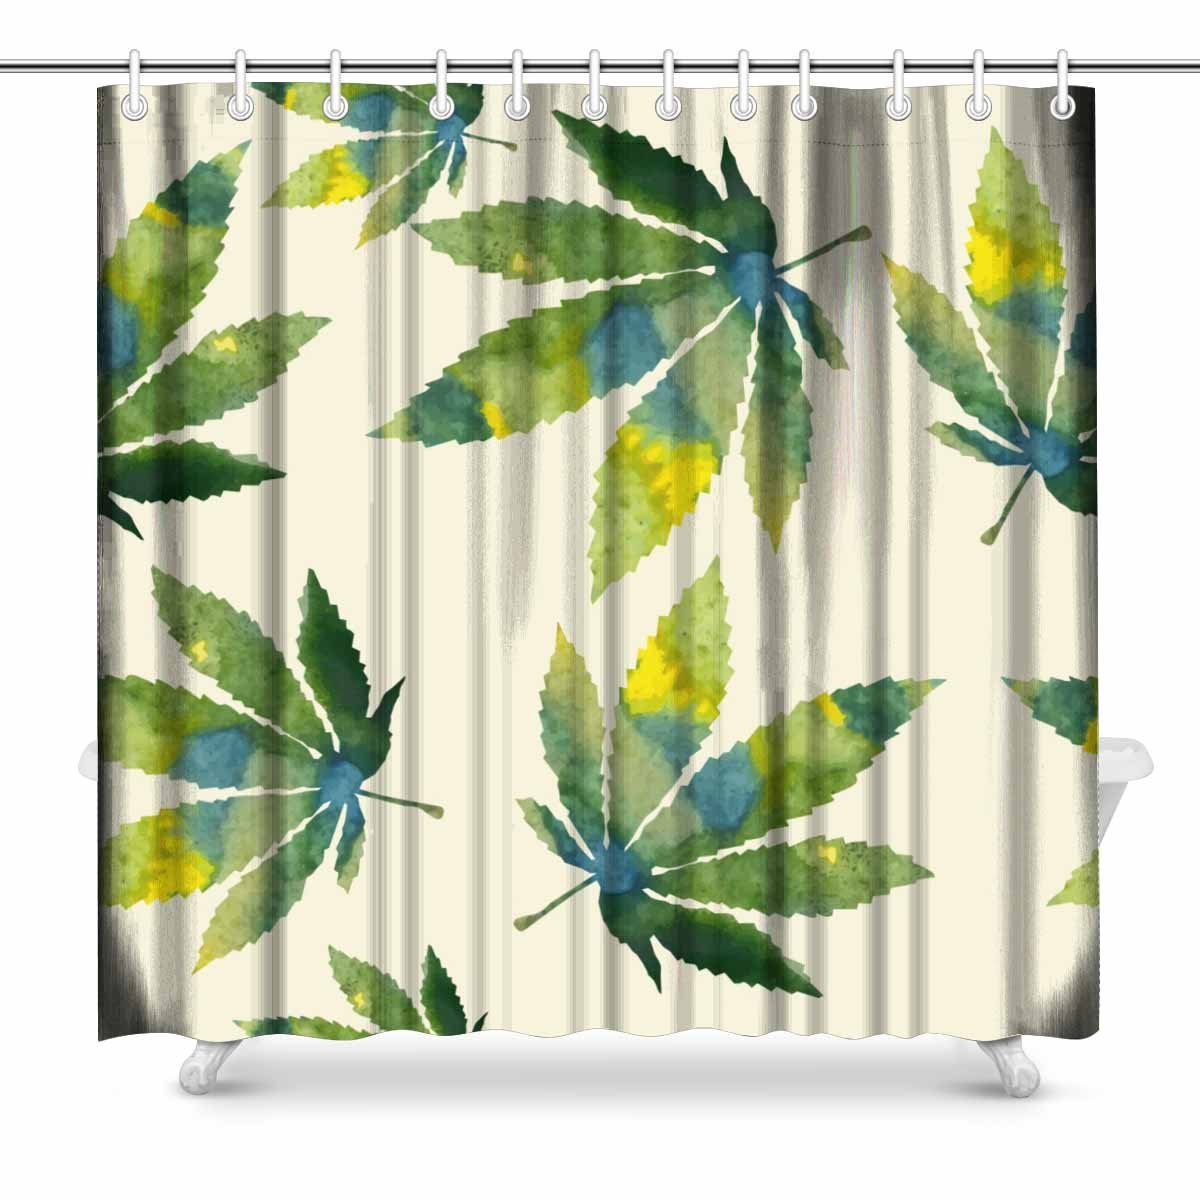 Us 15 99 36 Off Cannabis Leafs Print Polyester Fabric Shower Curtain 72 X 72 Inches Extra Long In Shower Curtains From Home Garden On Aliexpress